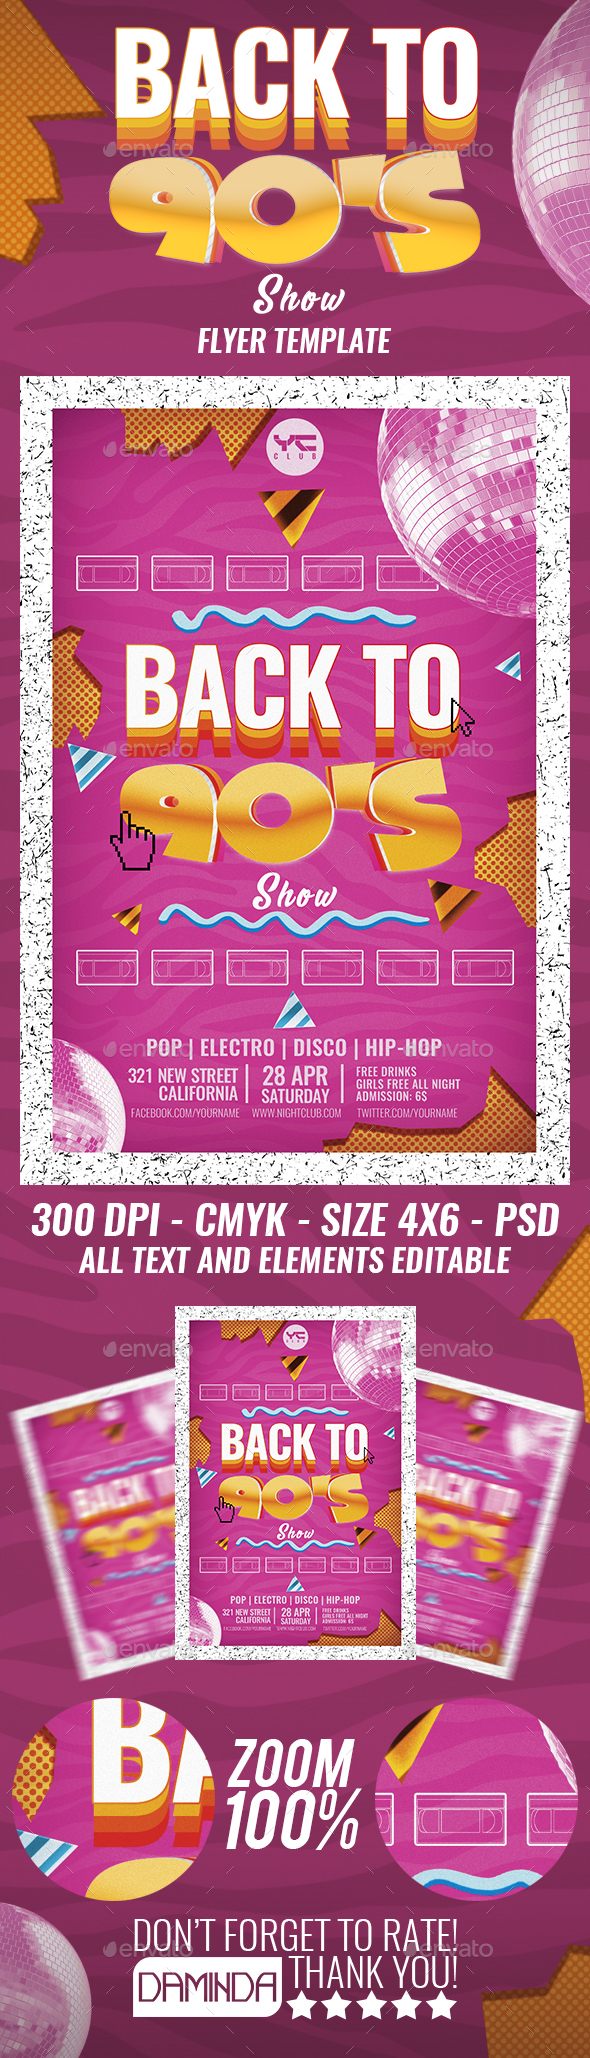 Back to the 90's show 3 Flyer Template - Clubs & Parties Events